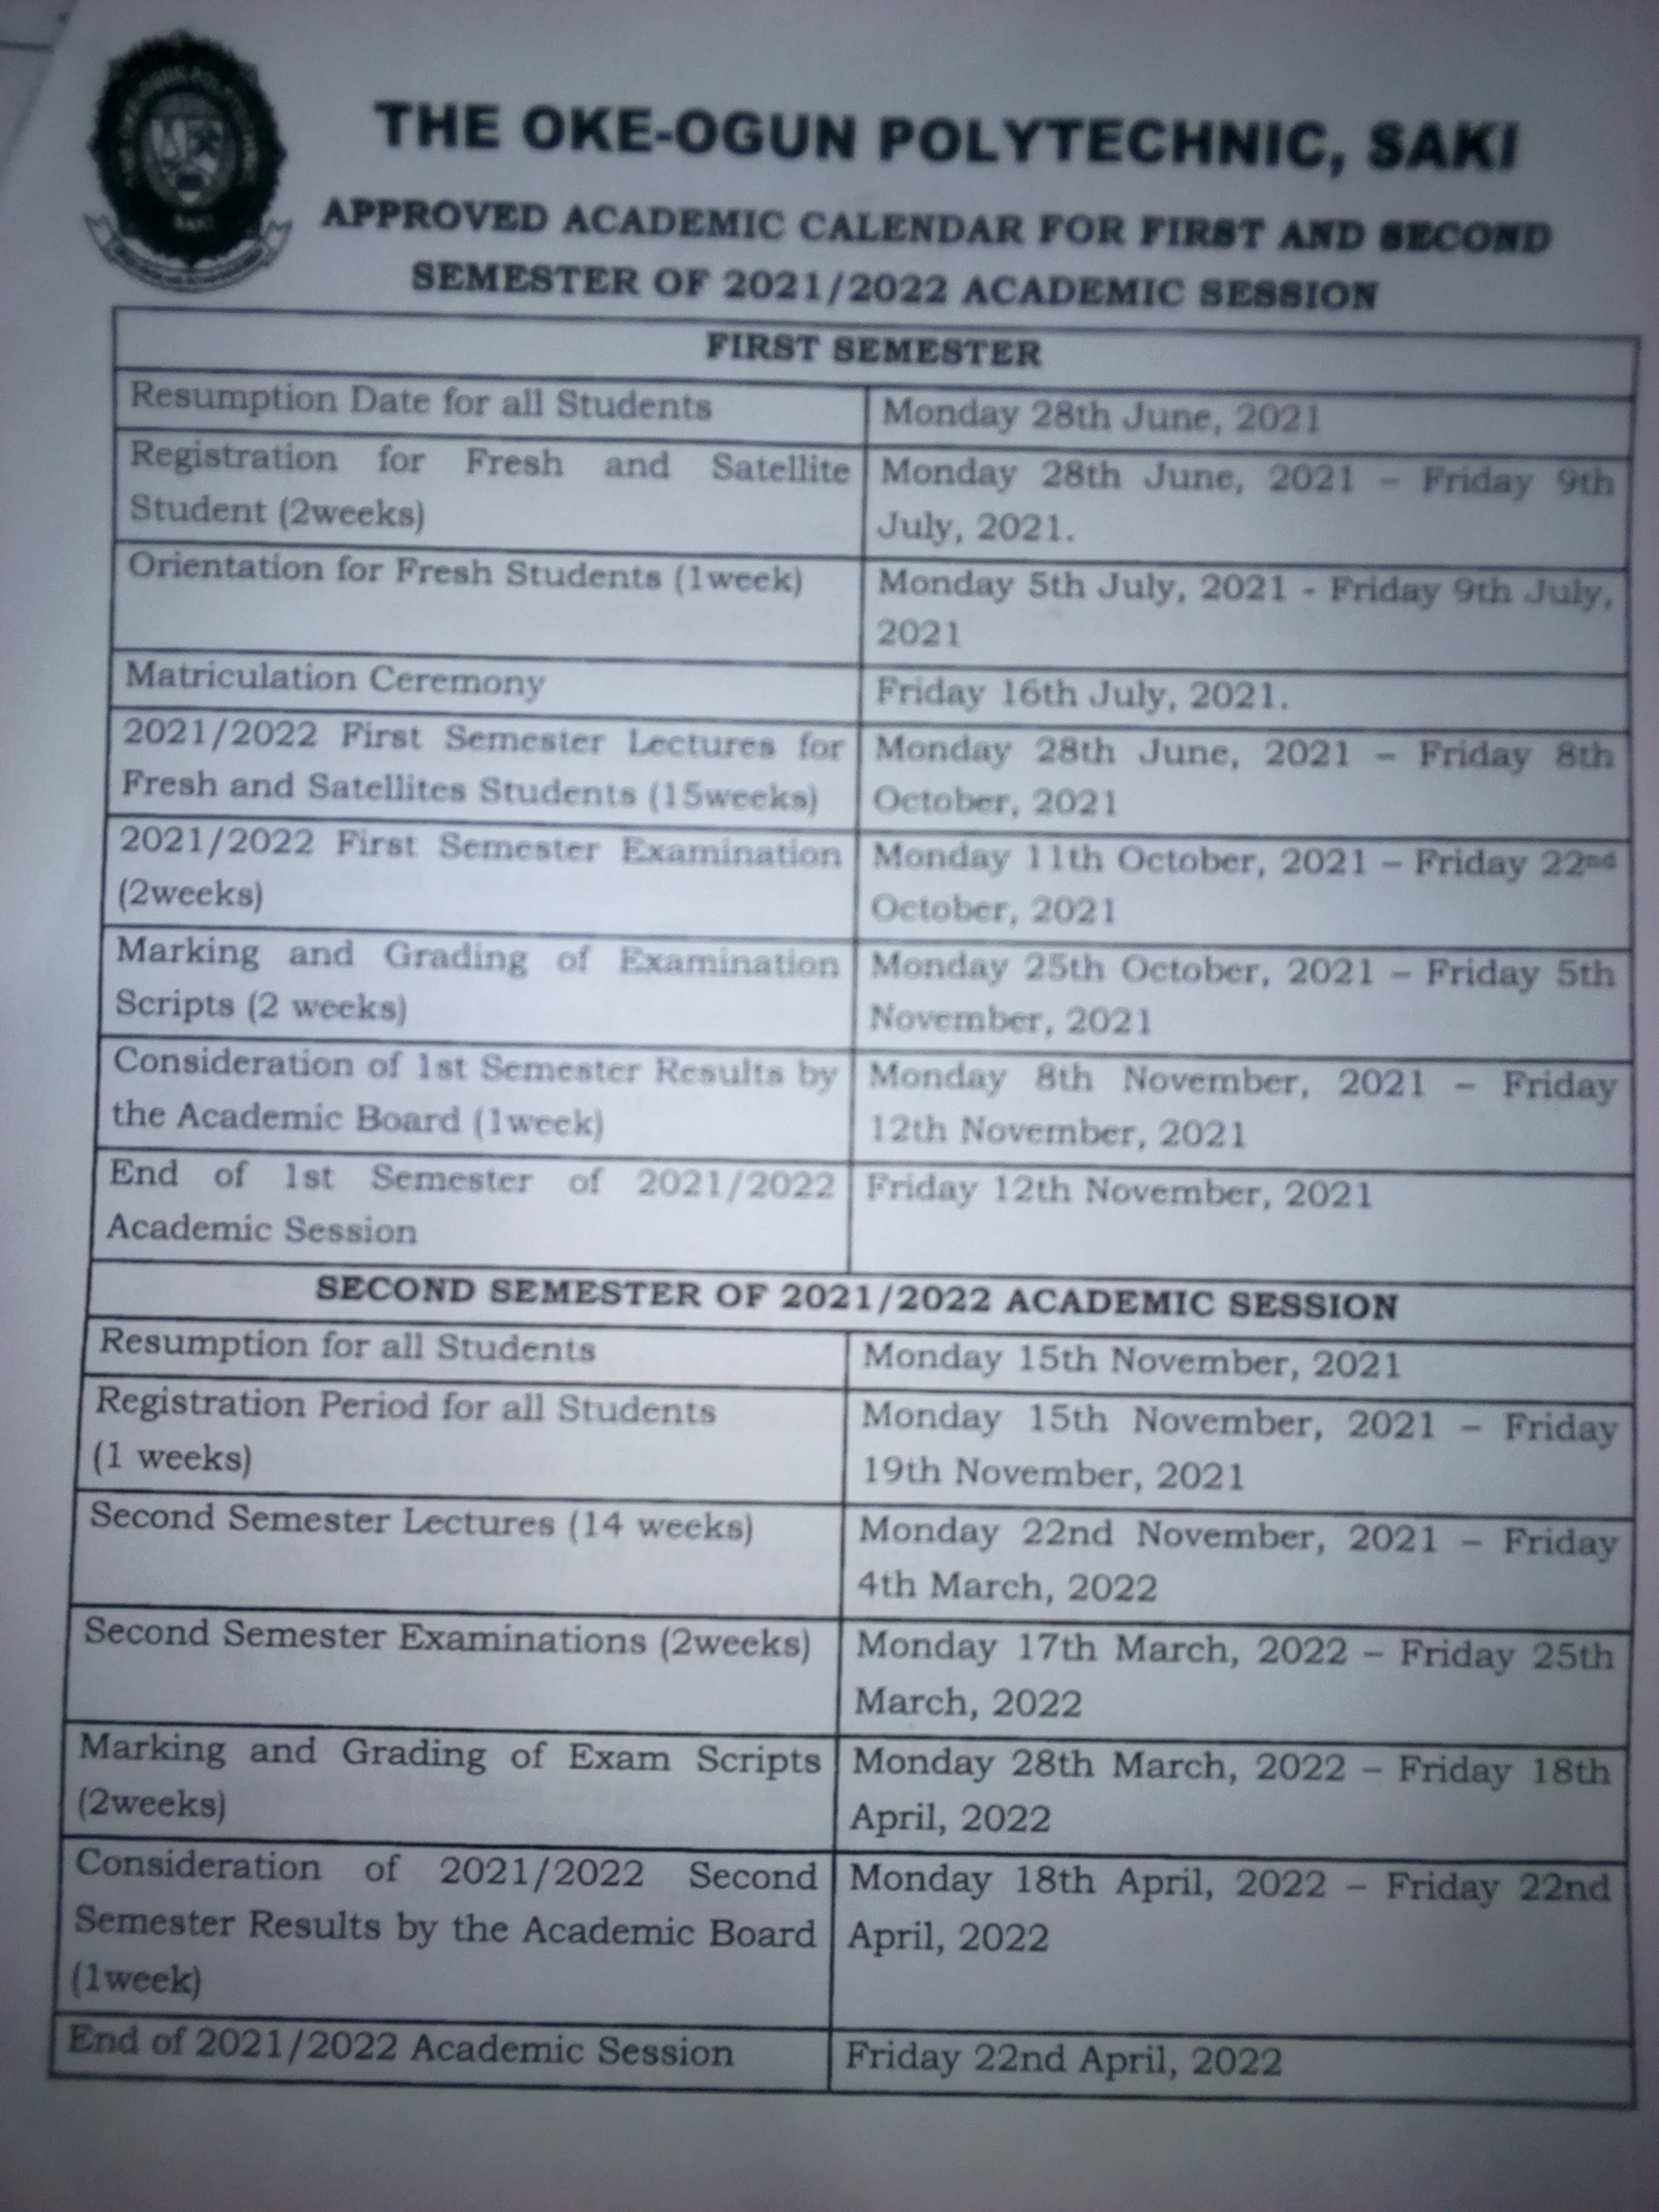 APPROVED ACADEMIC CALENDER FOR FIRST AND SECOND SEMESTER OF  2021/2022 ACADEMIC SESSION